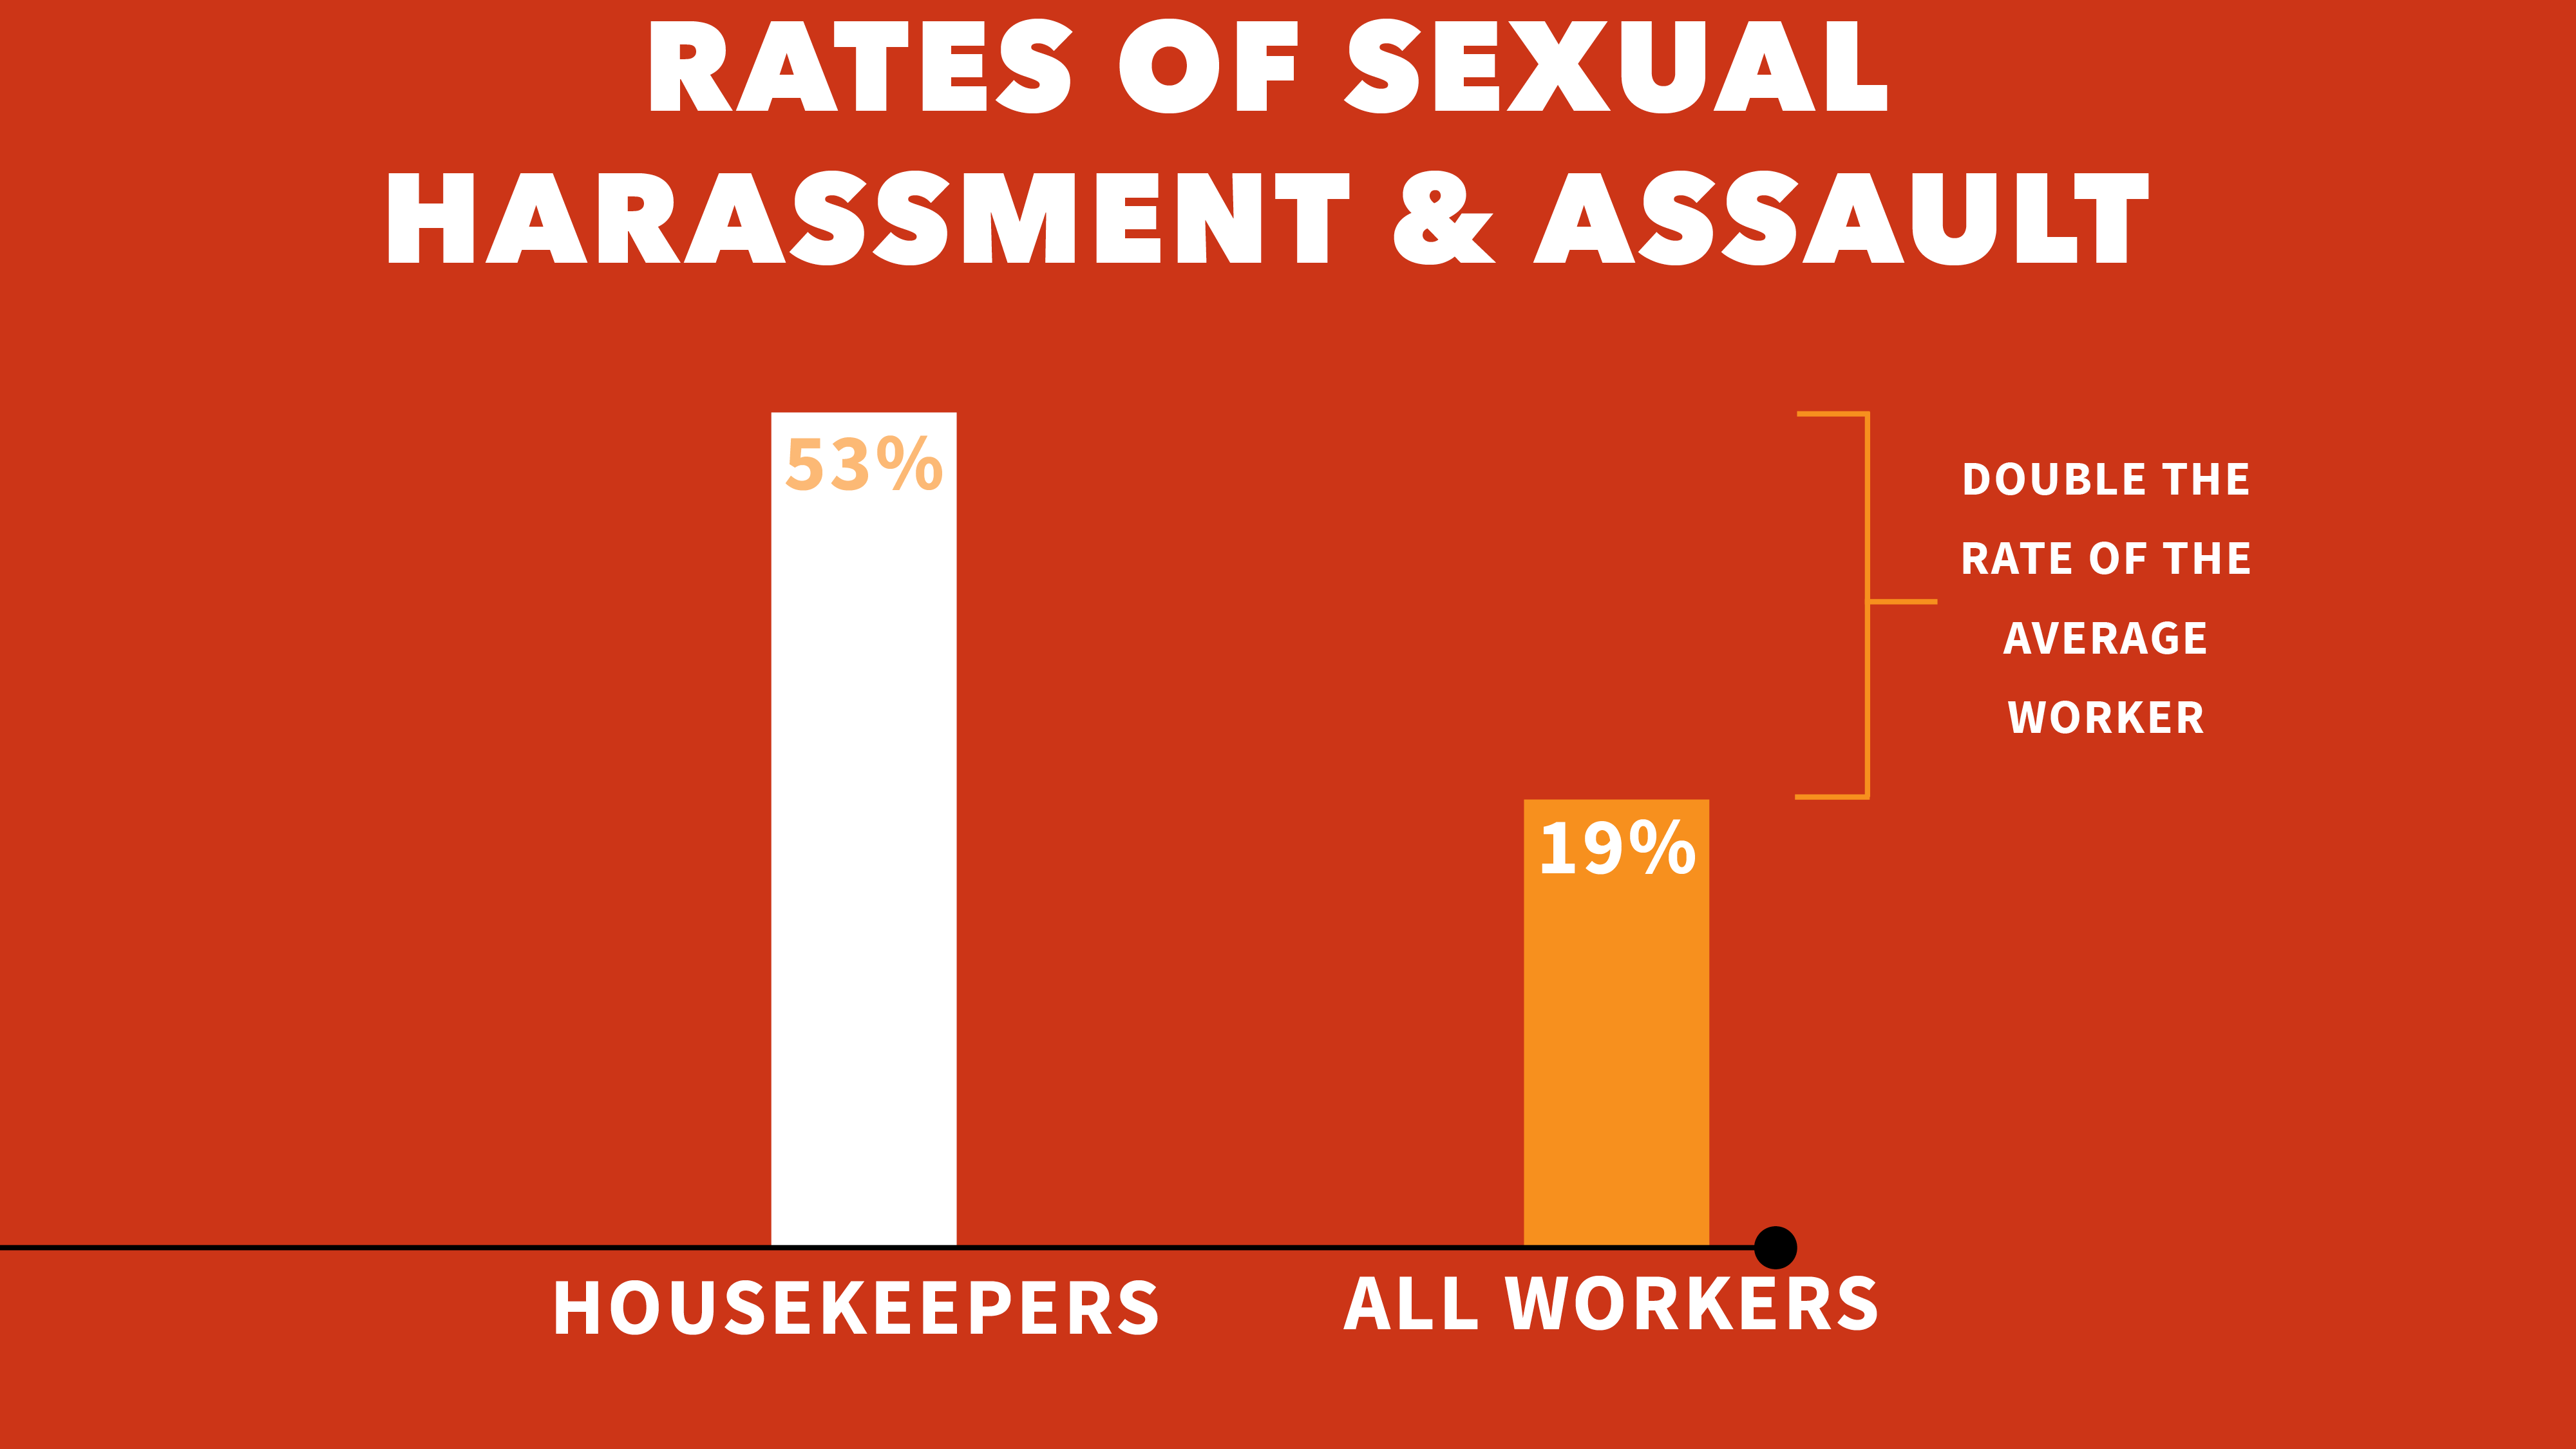 Graph of higher rates of sexual harassment reported by housekeepers